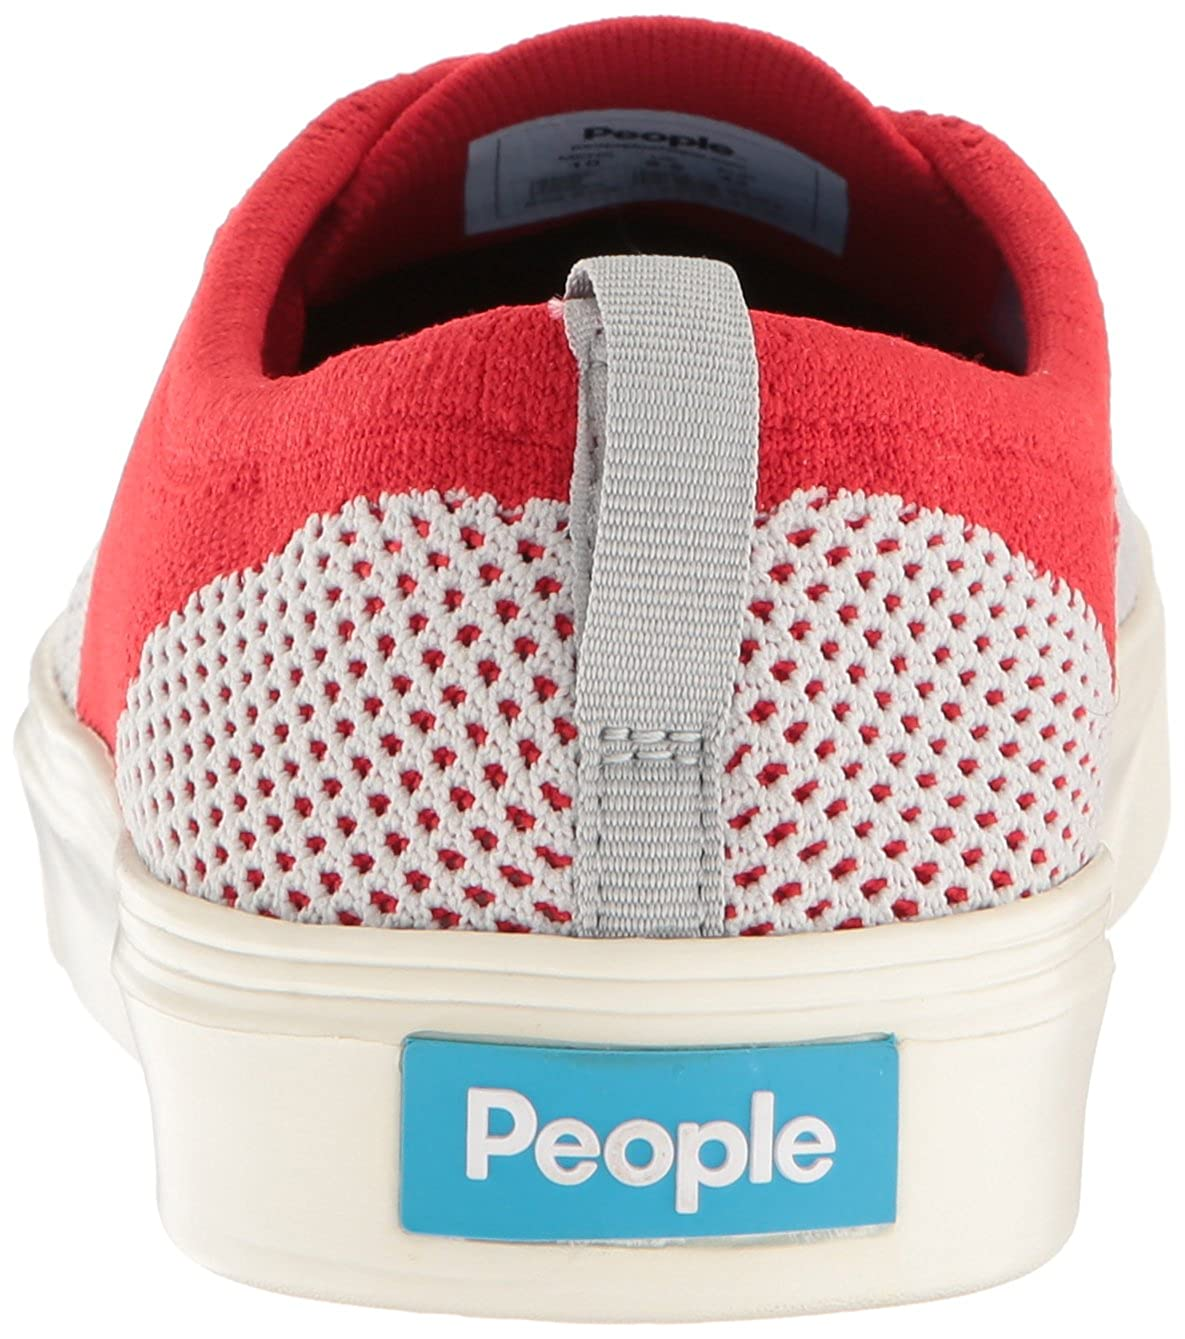 Unisex Really Black//Picket White sneakers-and-athletic-shoes M3 People Footwear Stanley Knit W5 M